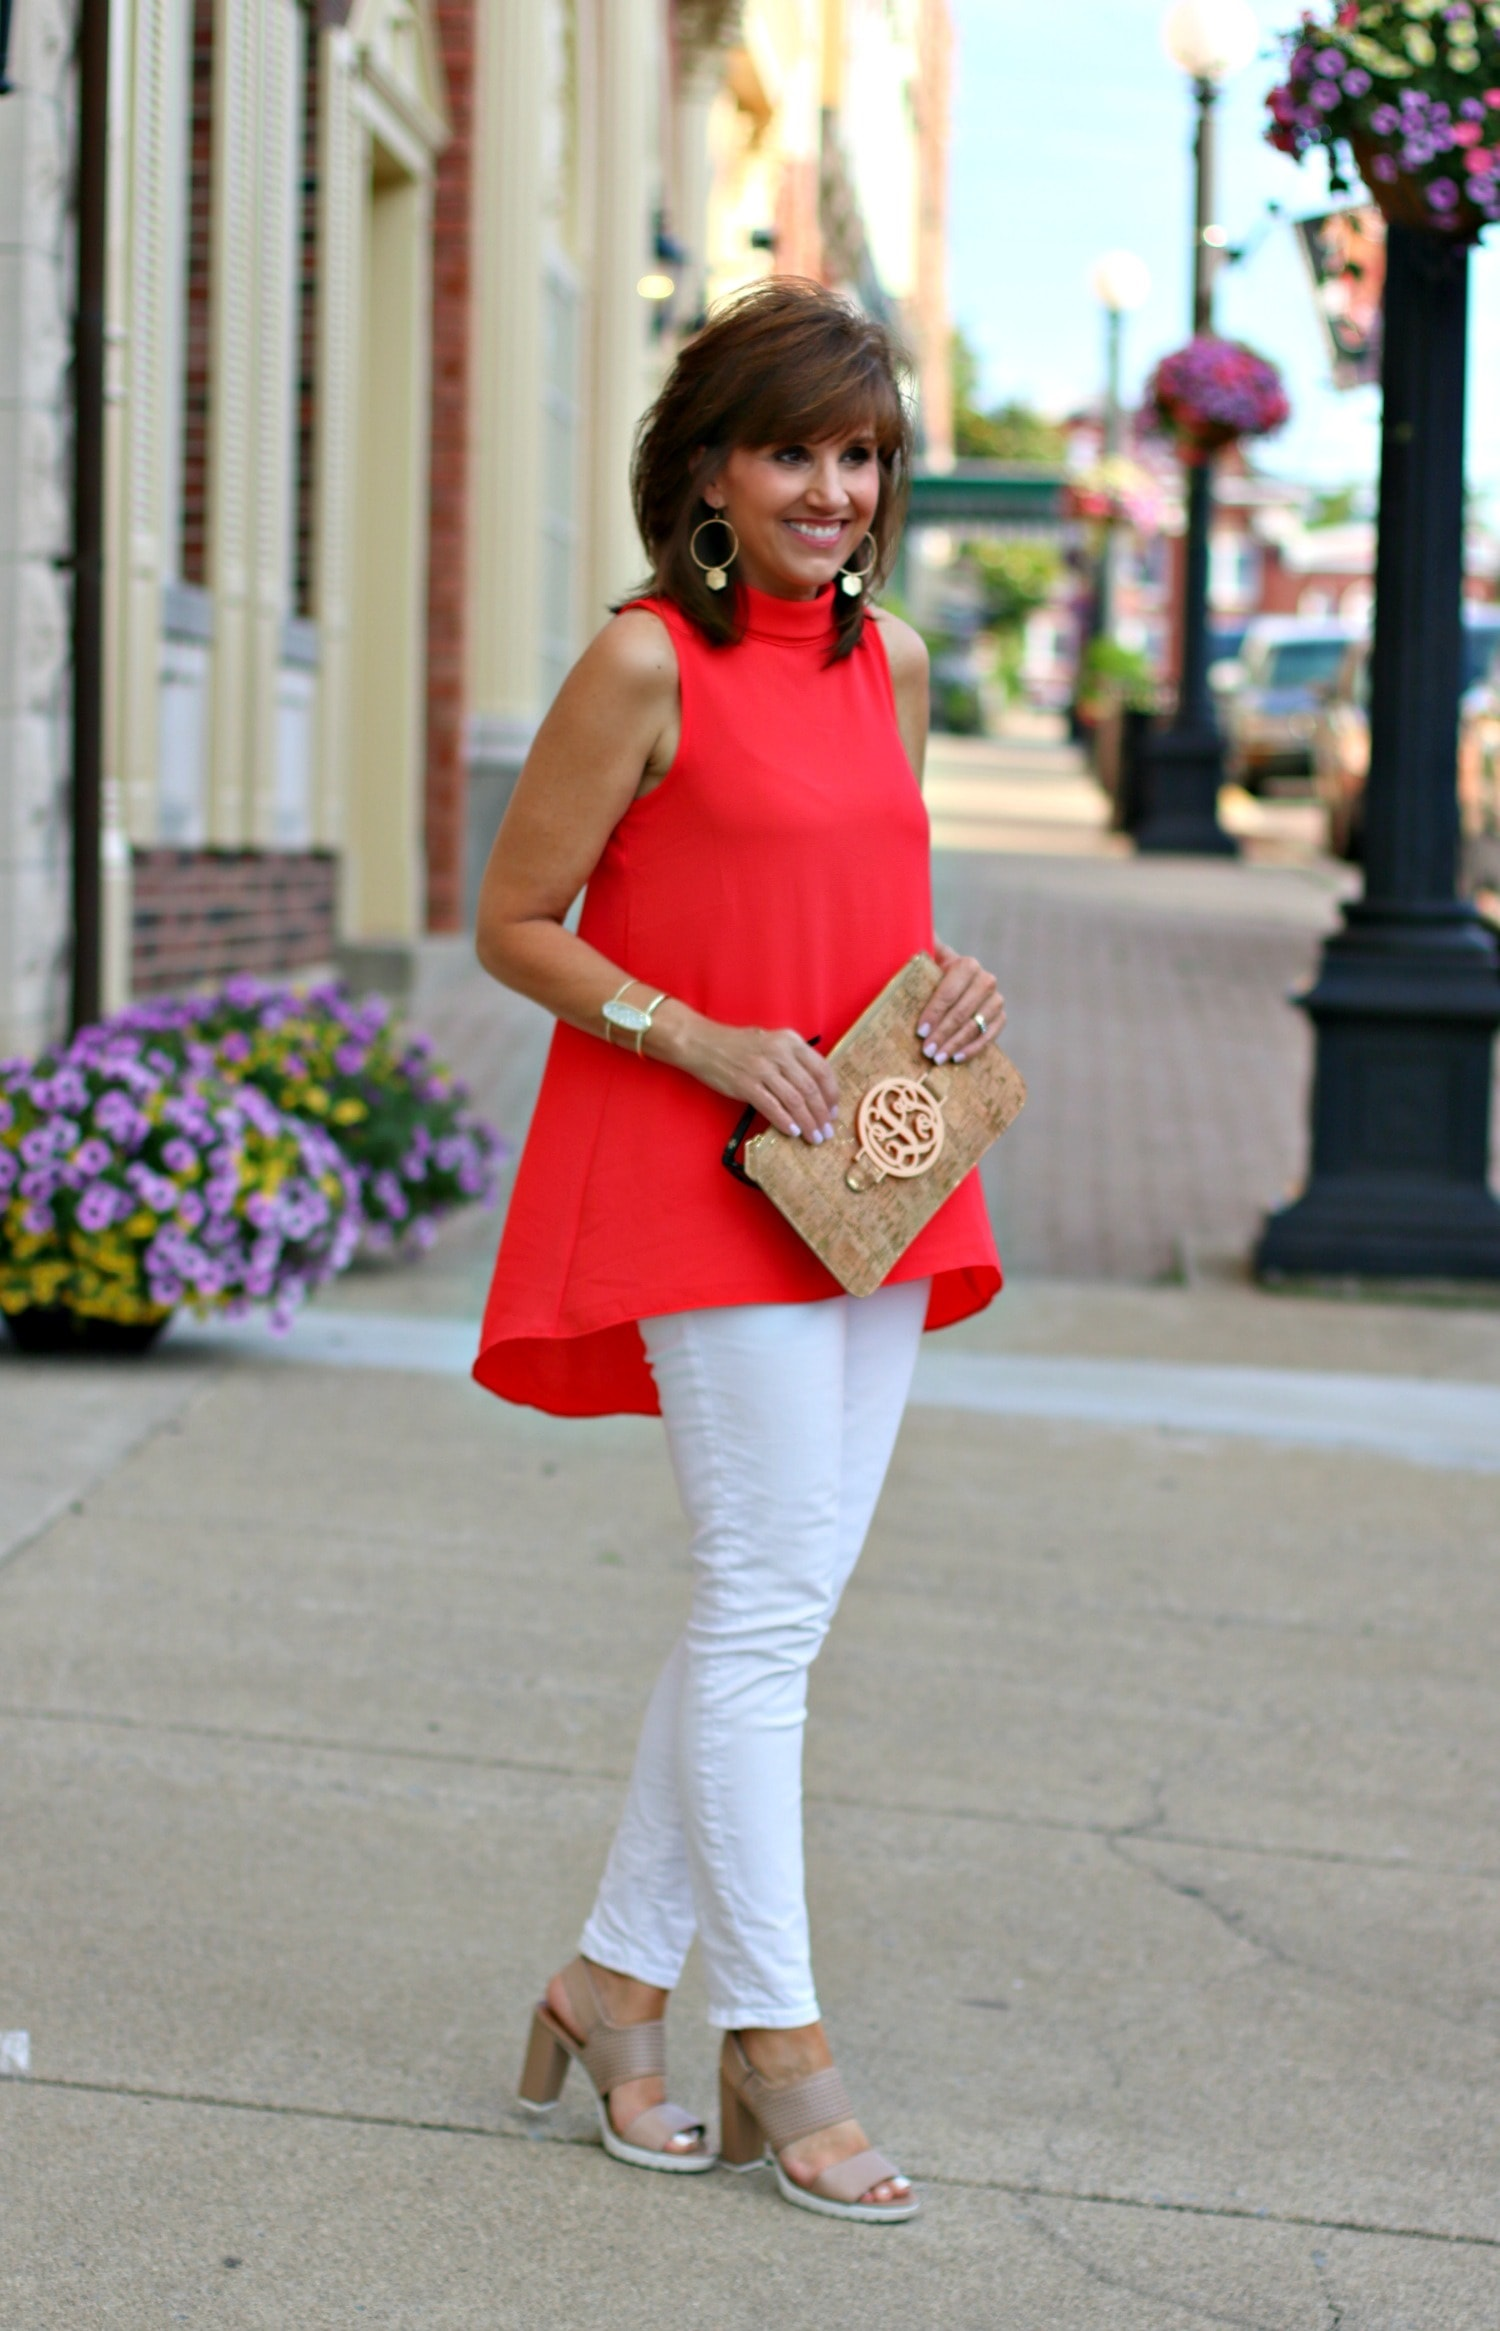 Galentine's Day fashion outfit, white jeans and red top with a clutch and pink sandals